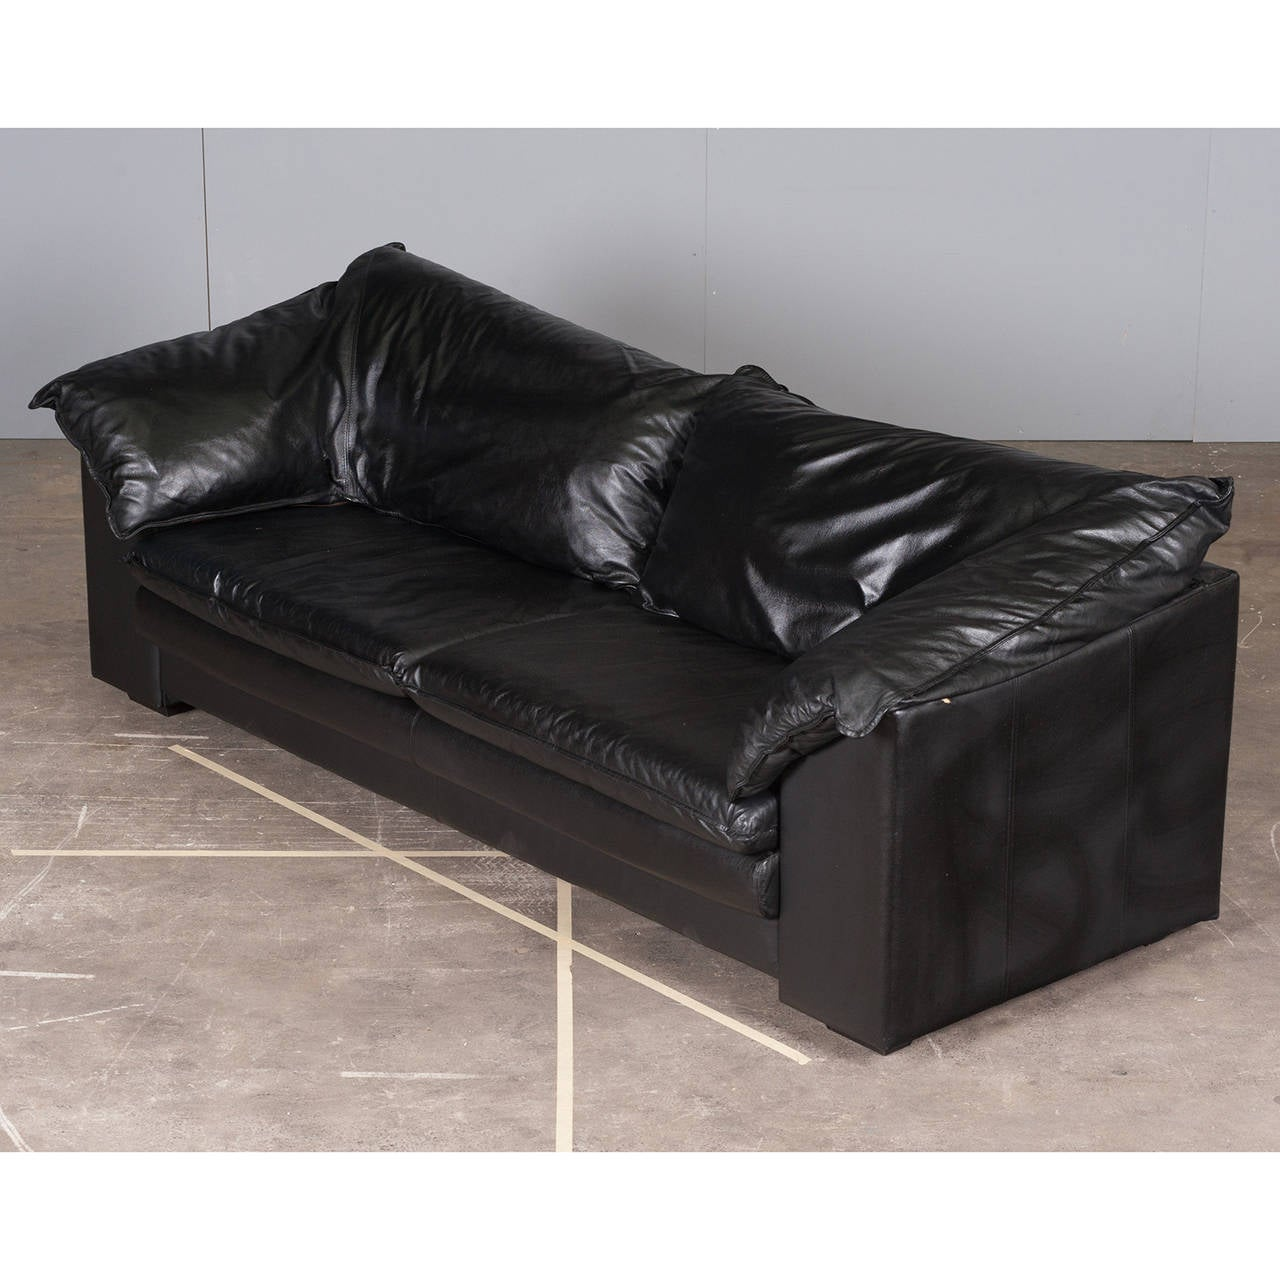 Italian ThreeSeater Sofa in Black Leather by Skalma, 1980s image 3